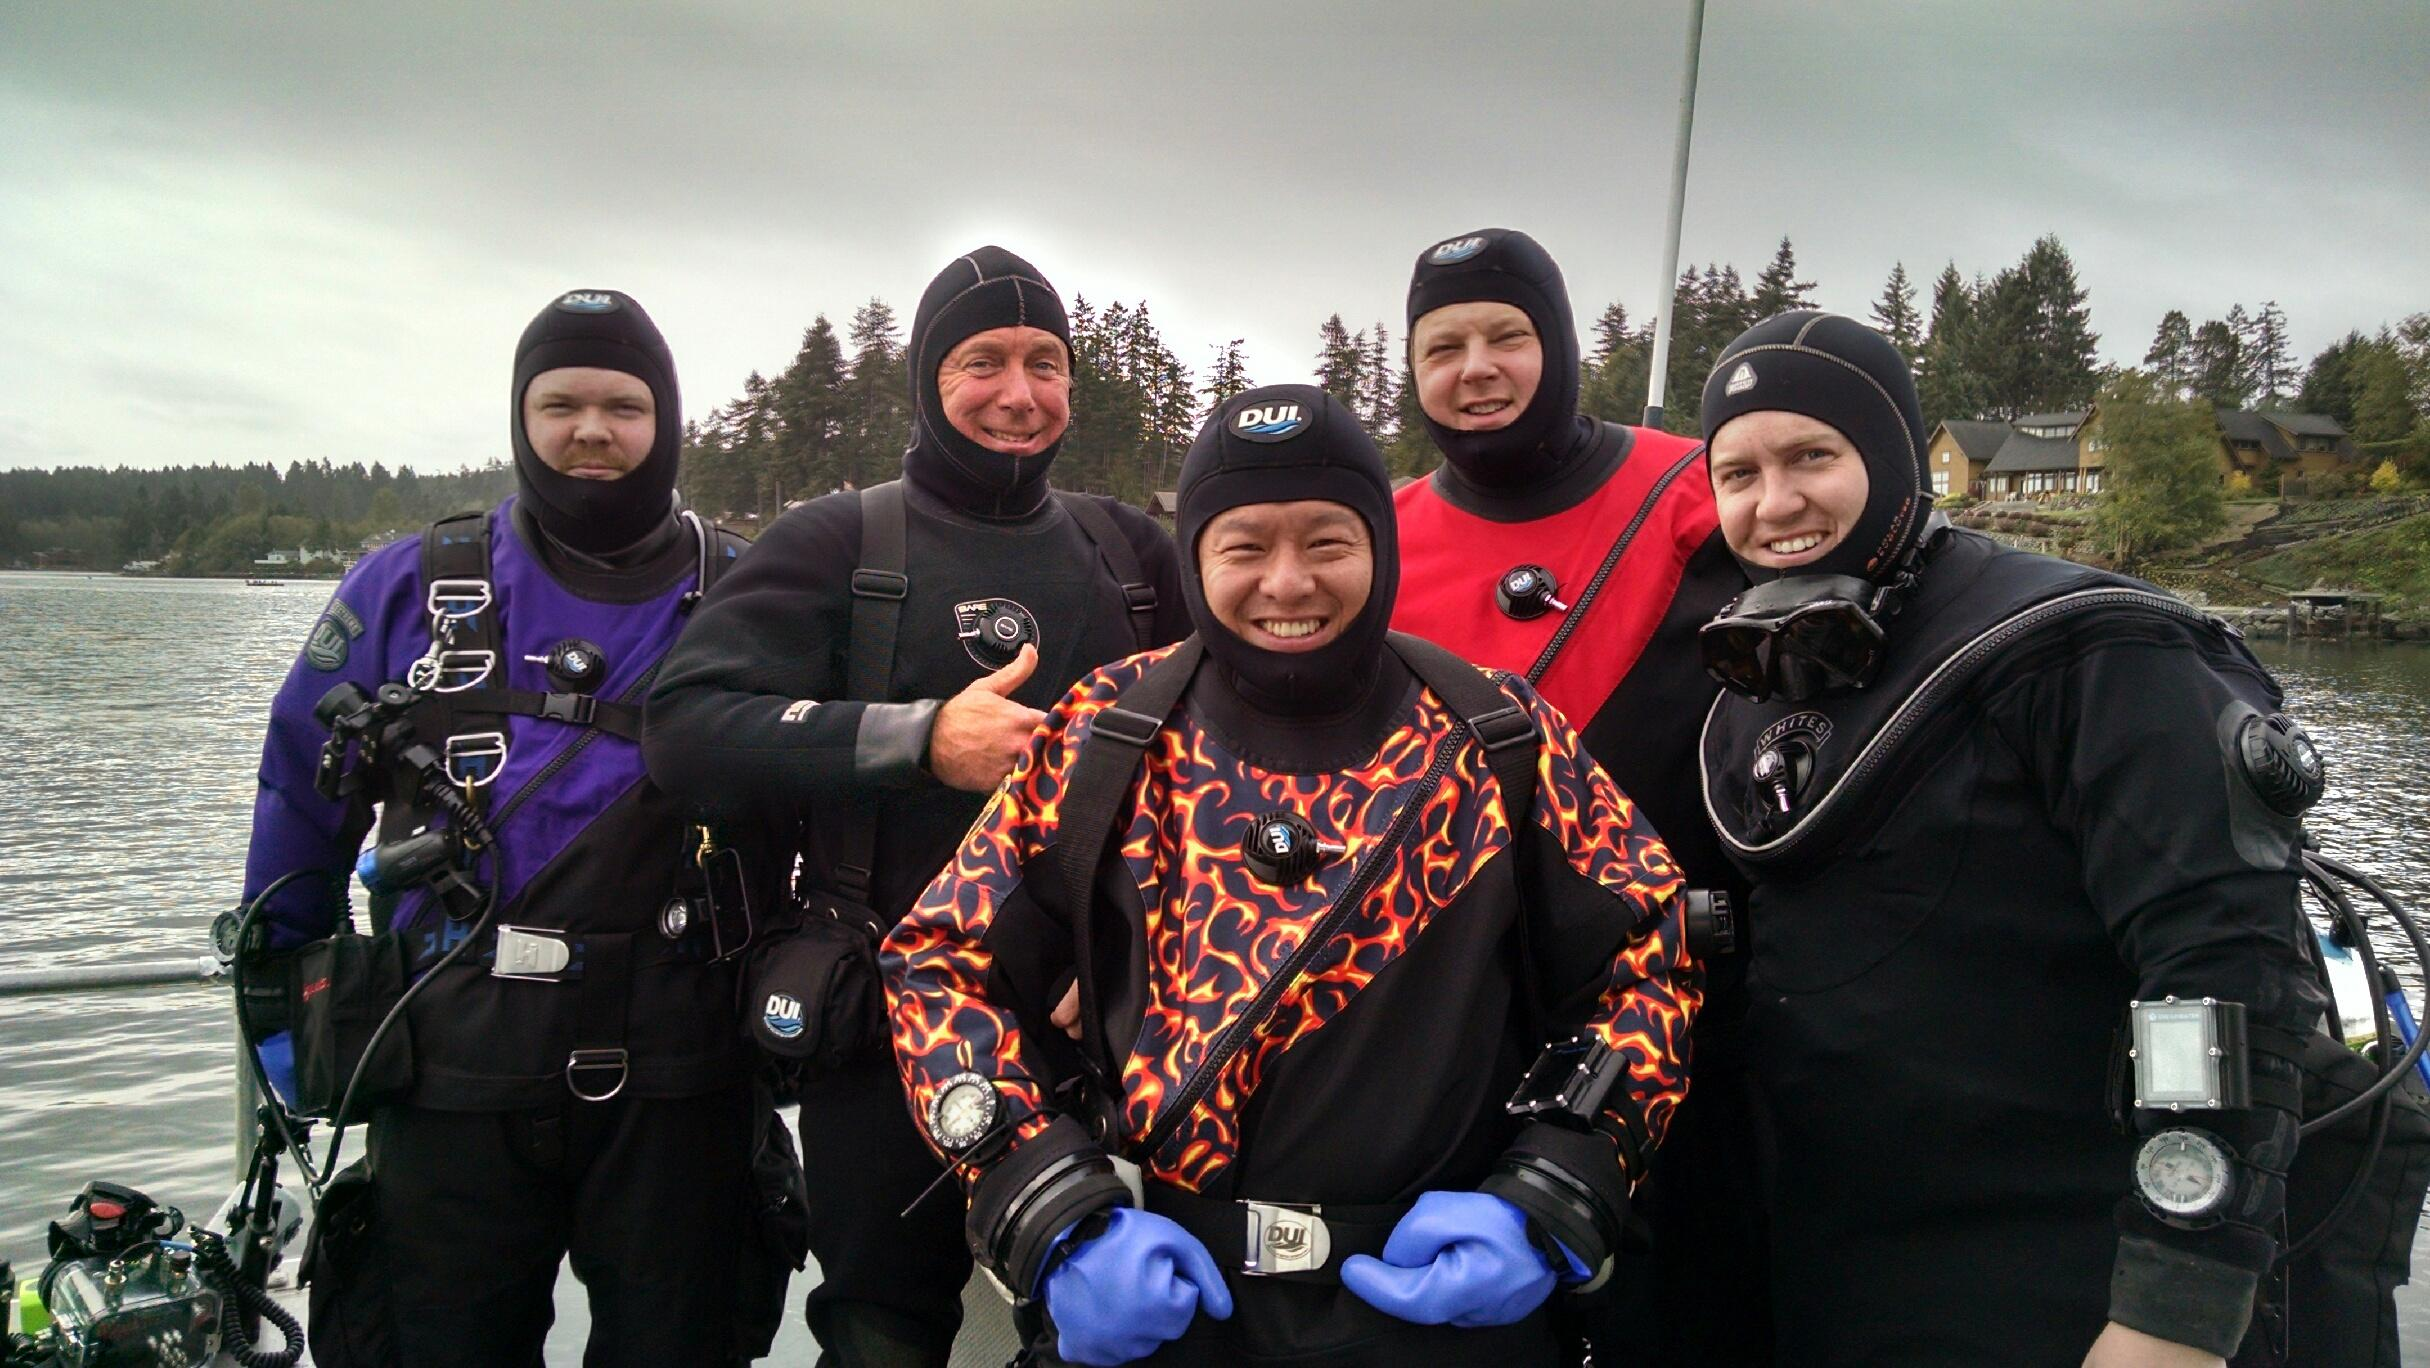 Our colorful group of divers for the day,